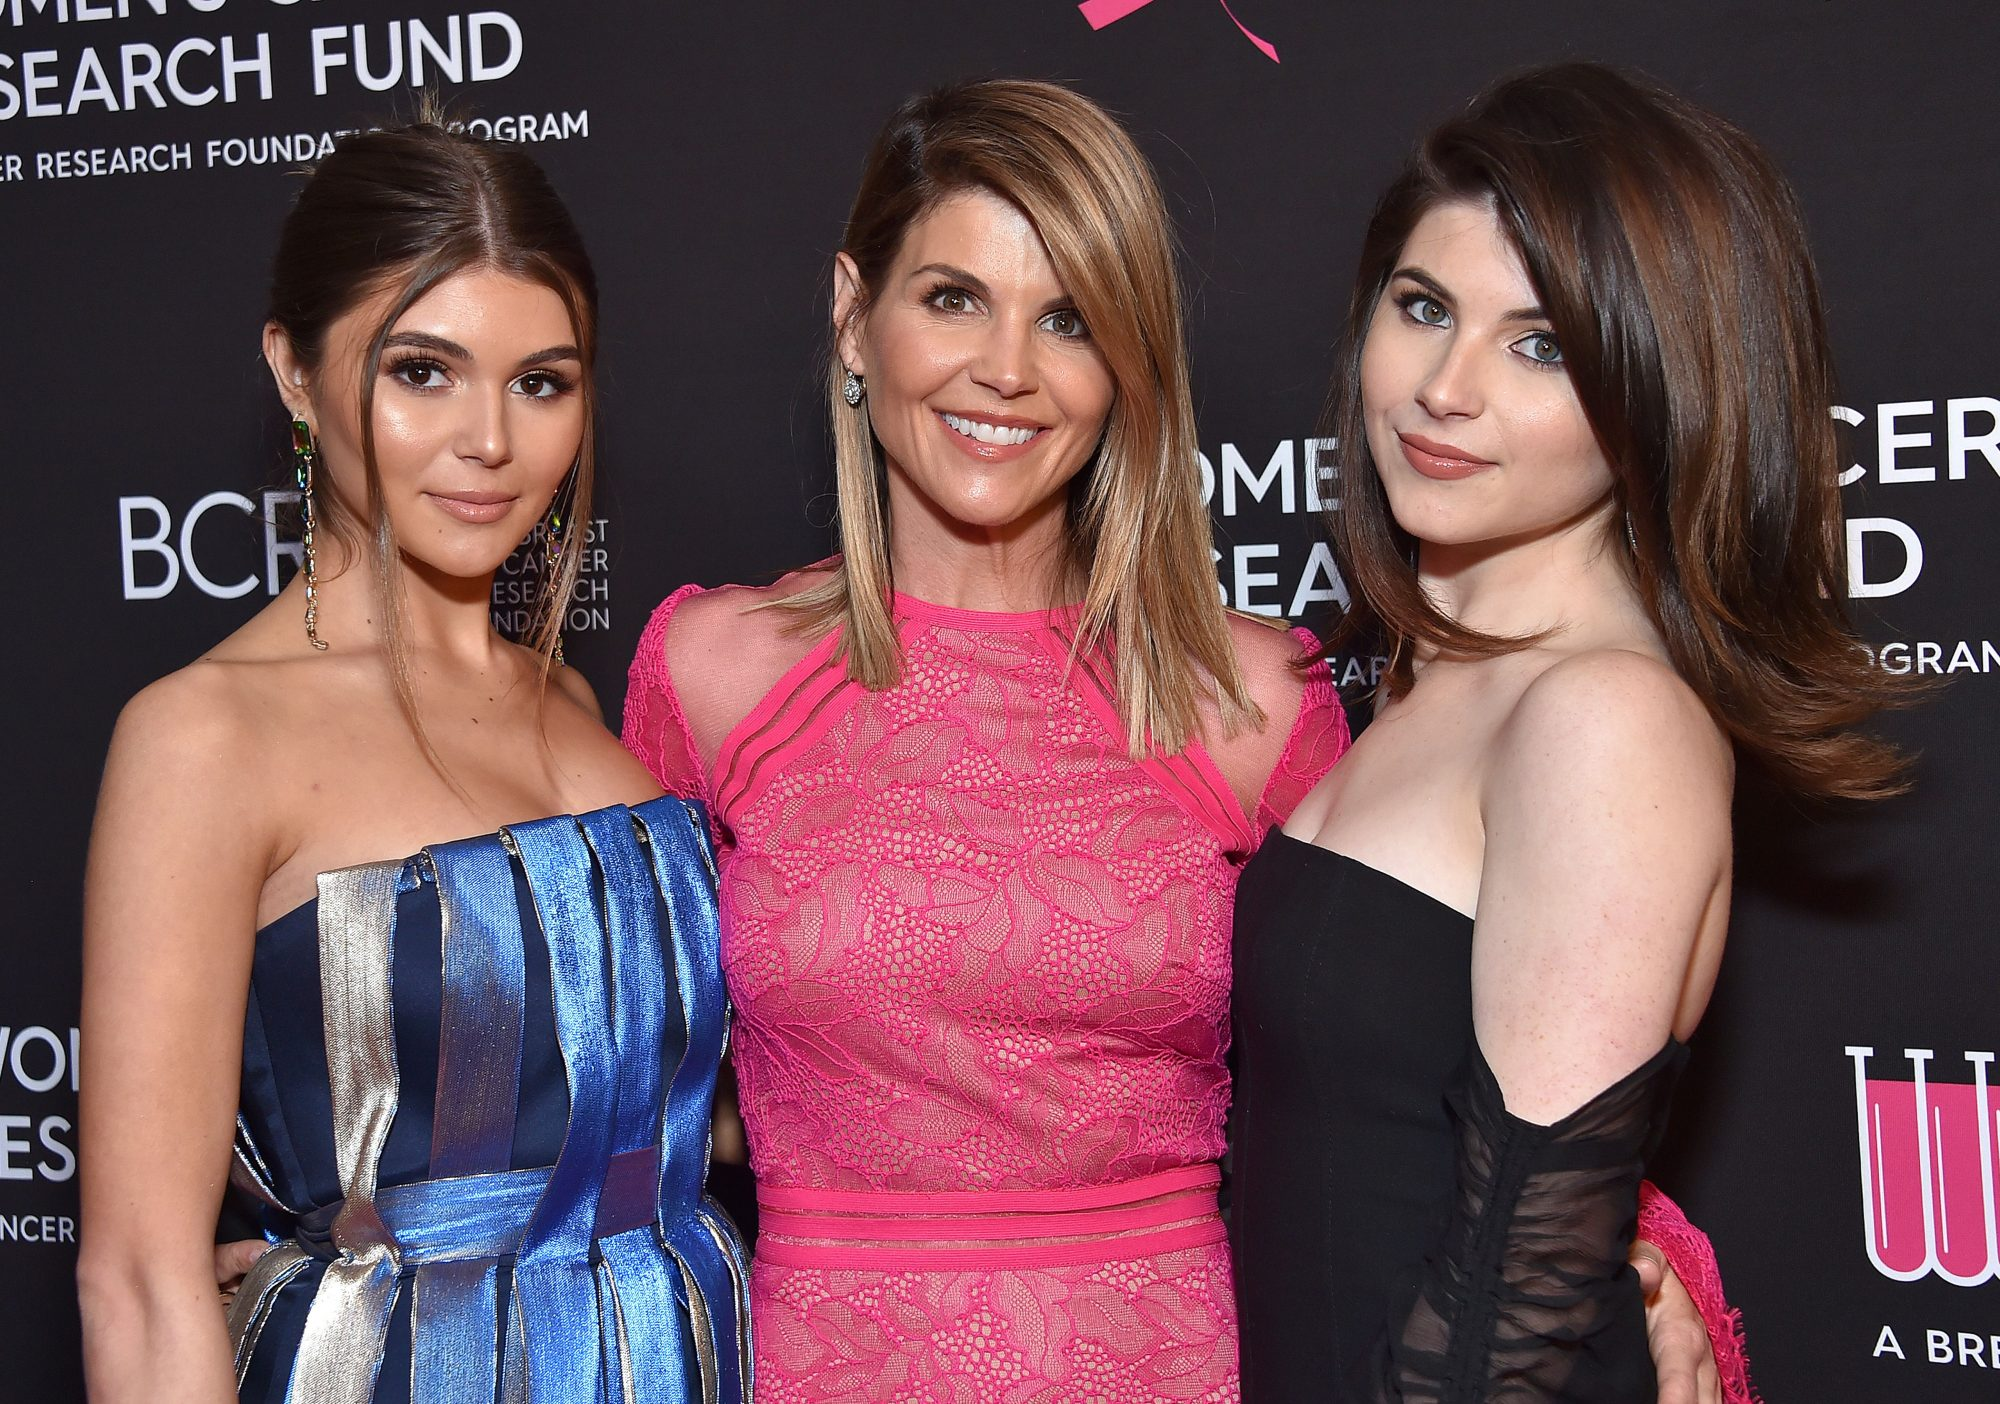 From left: Olivia Jade, Lori Loughlin and Bella Giannulli in February 2019